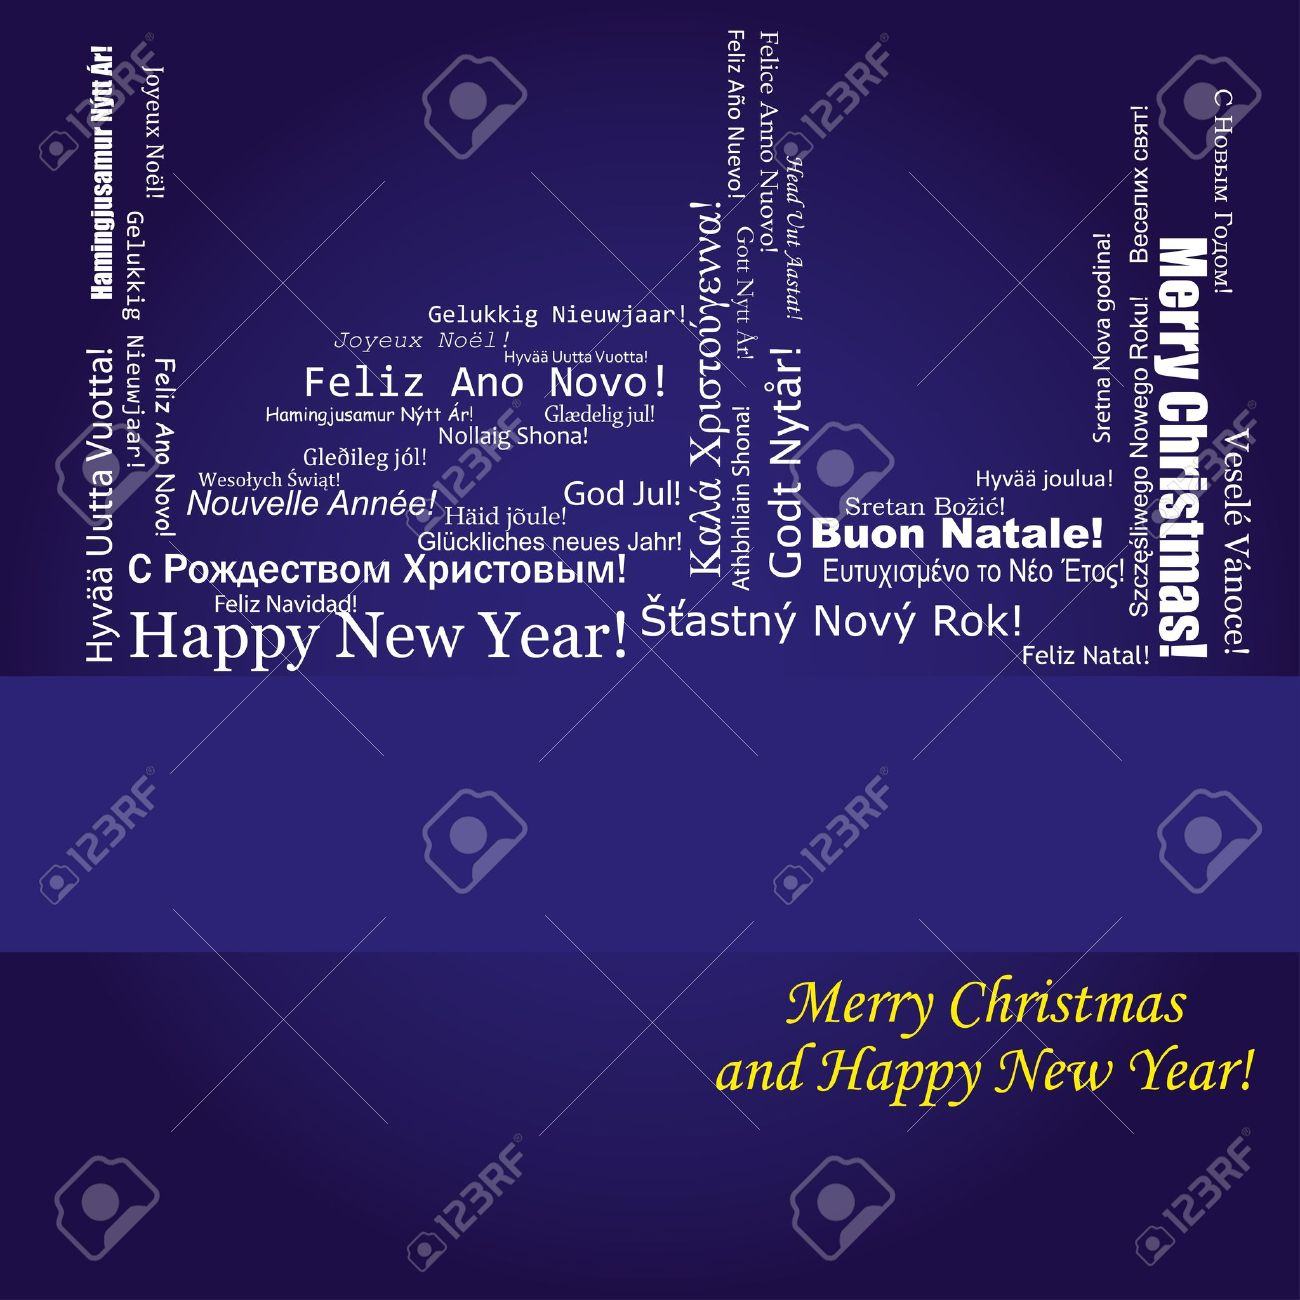 merry christmas and happy new year in swedish